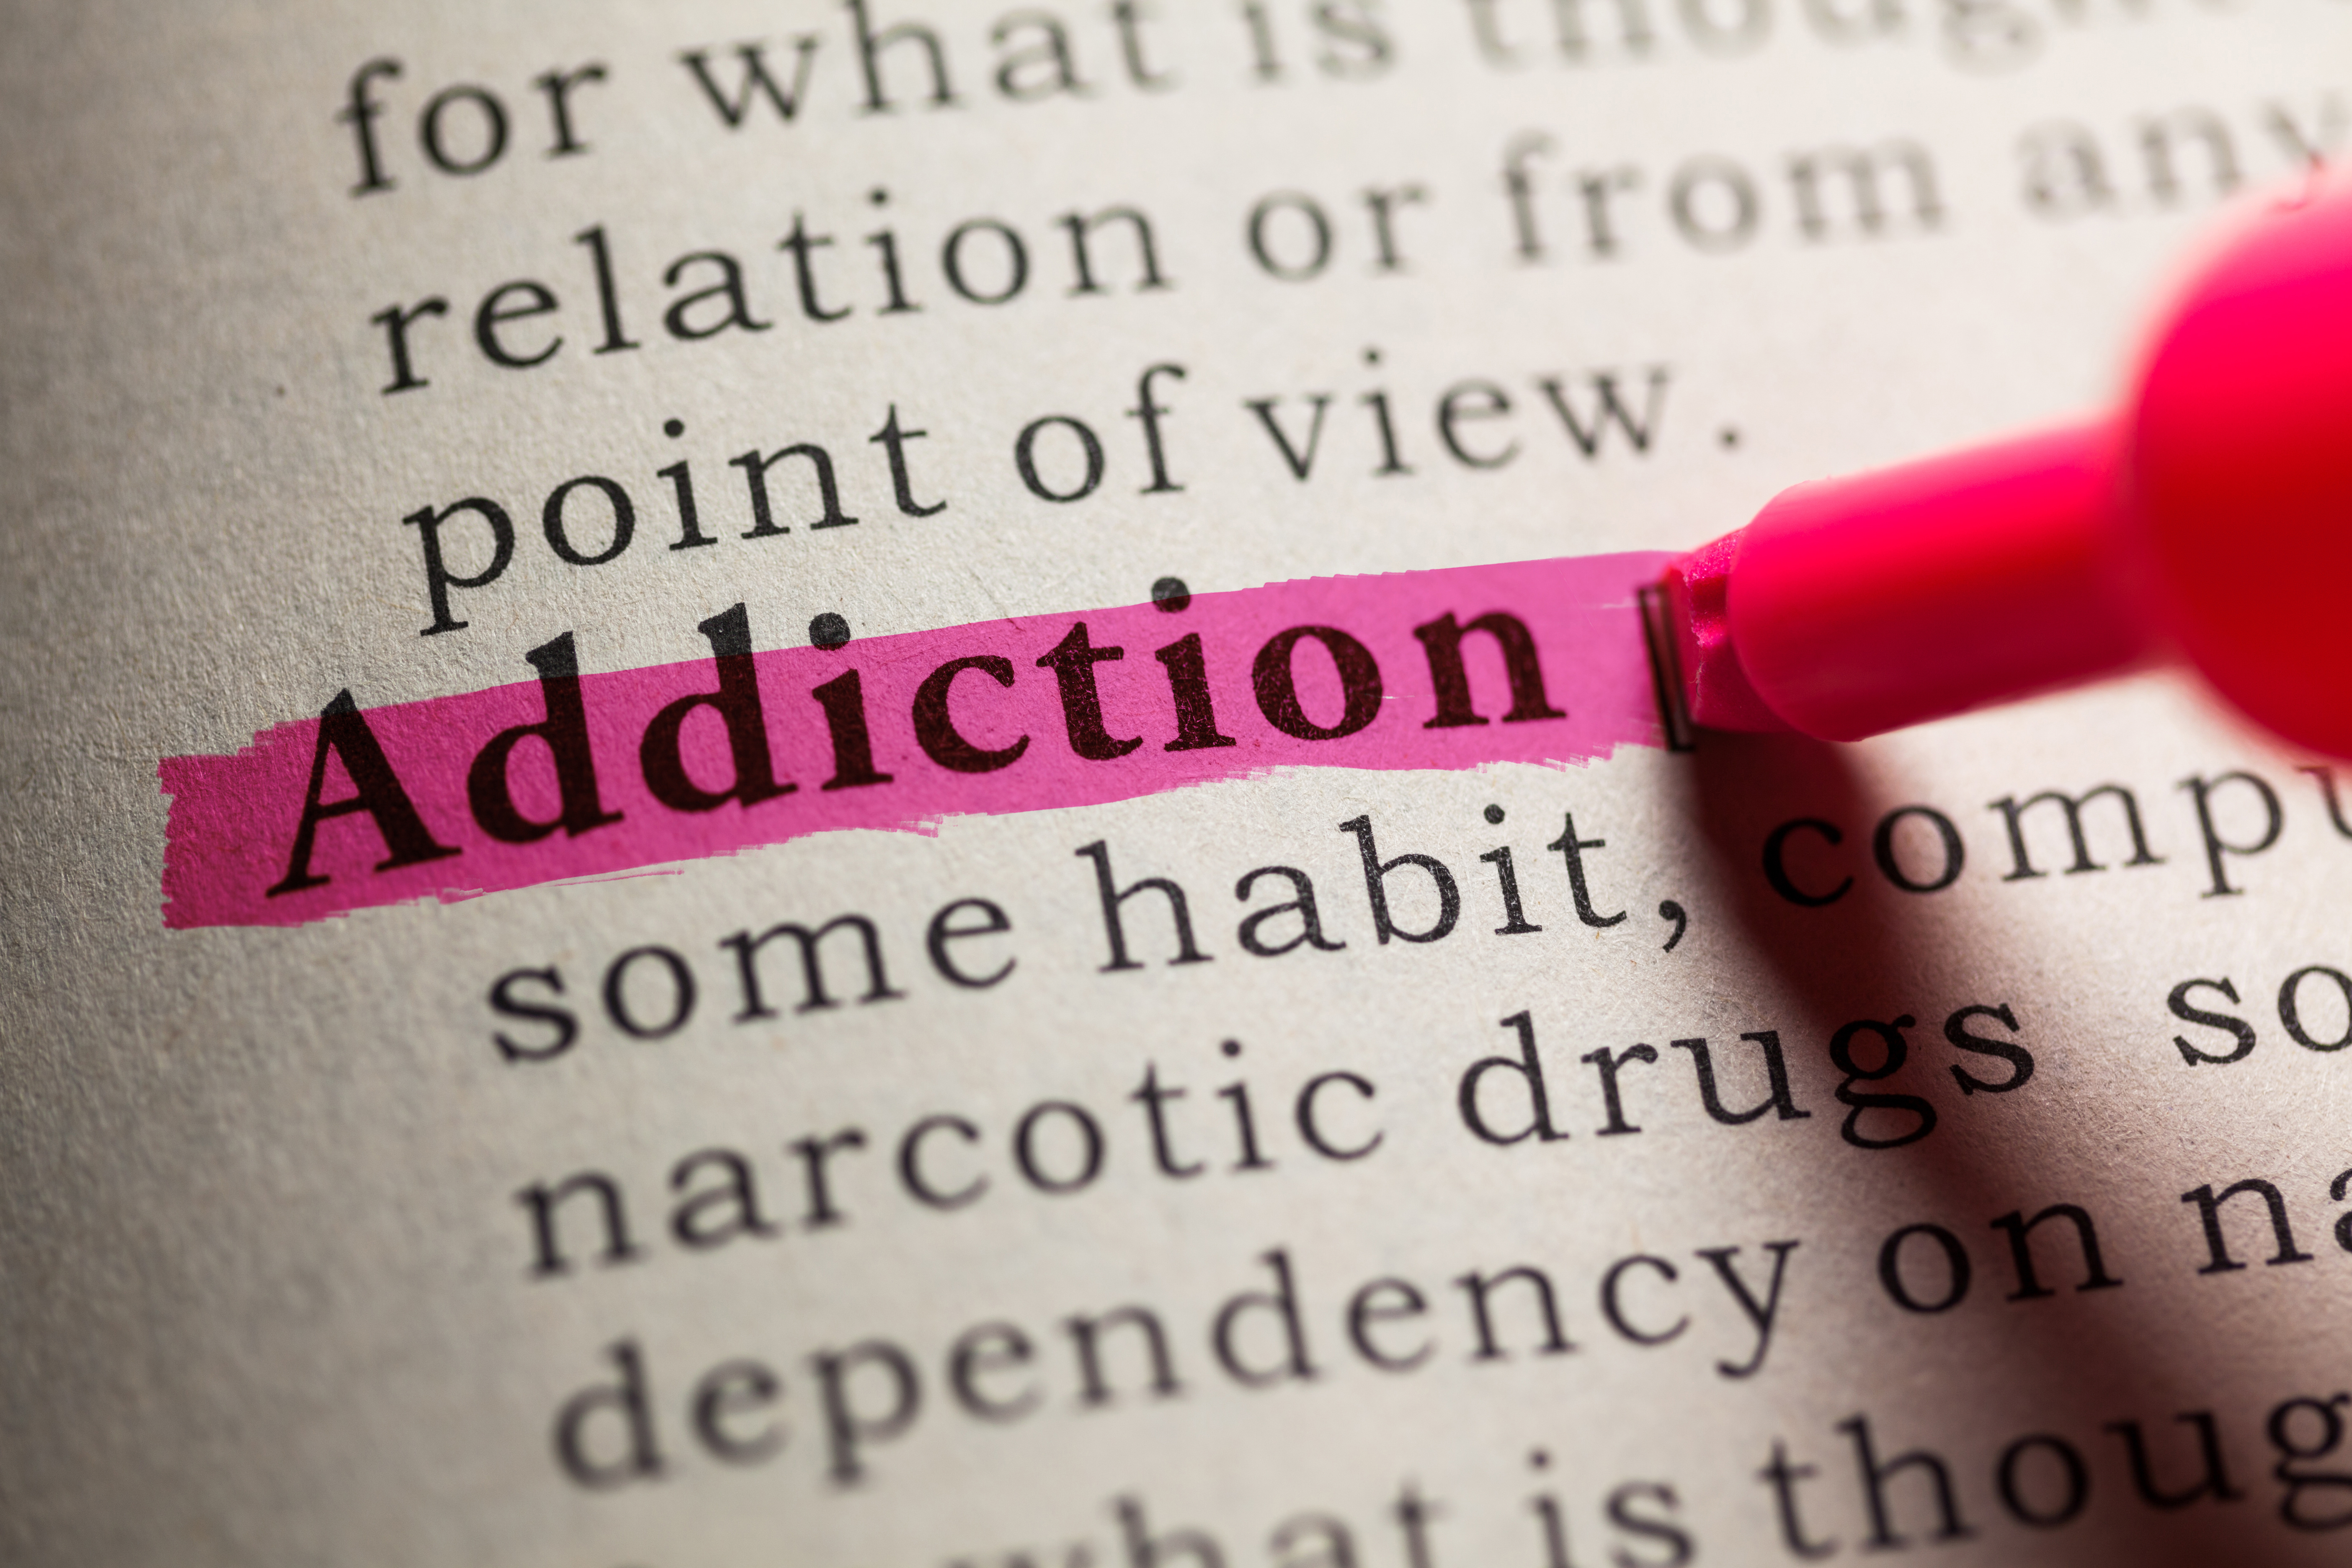 Addiction: A Chronic Brain Disease